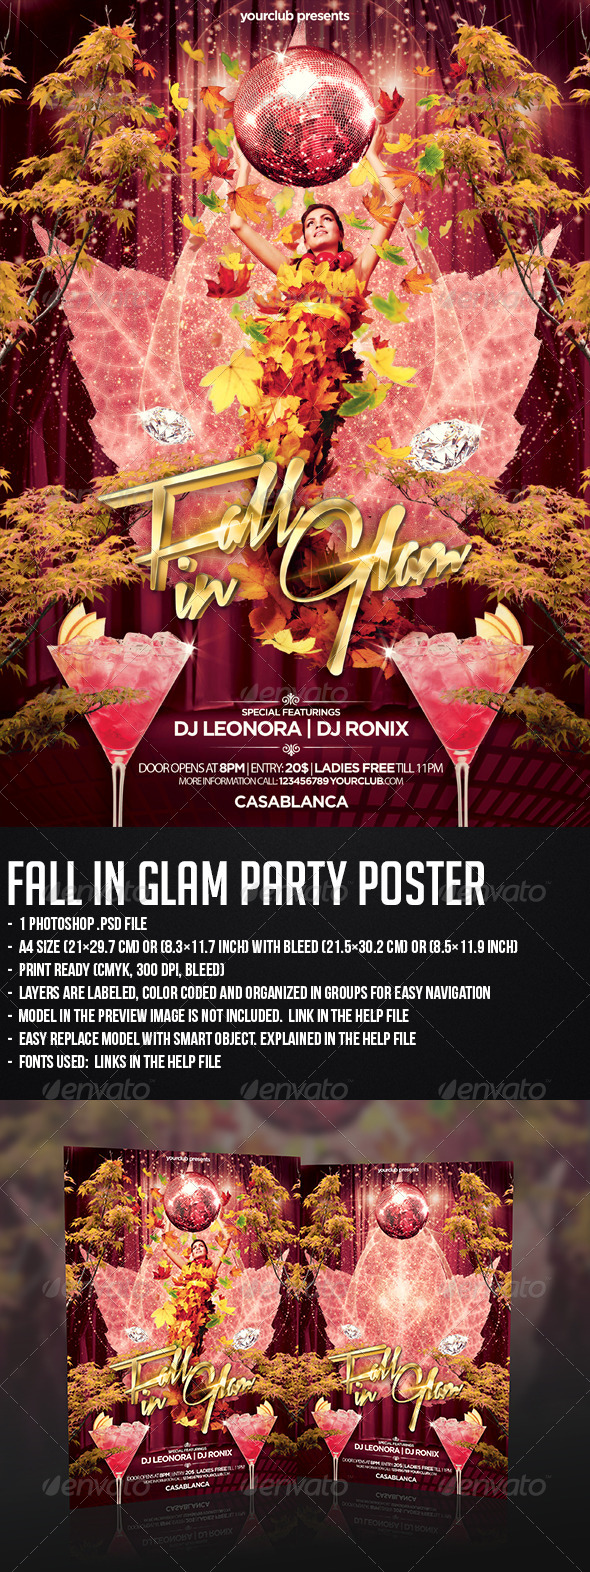 Fall In Glam Party Flyer - Clubs & Parties Events